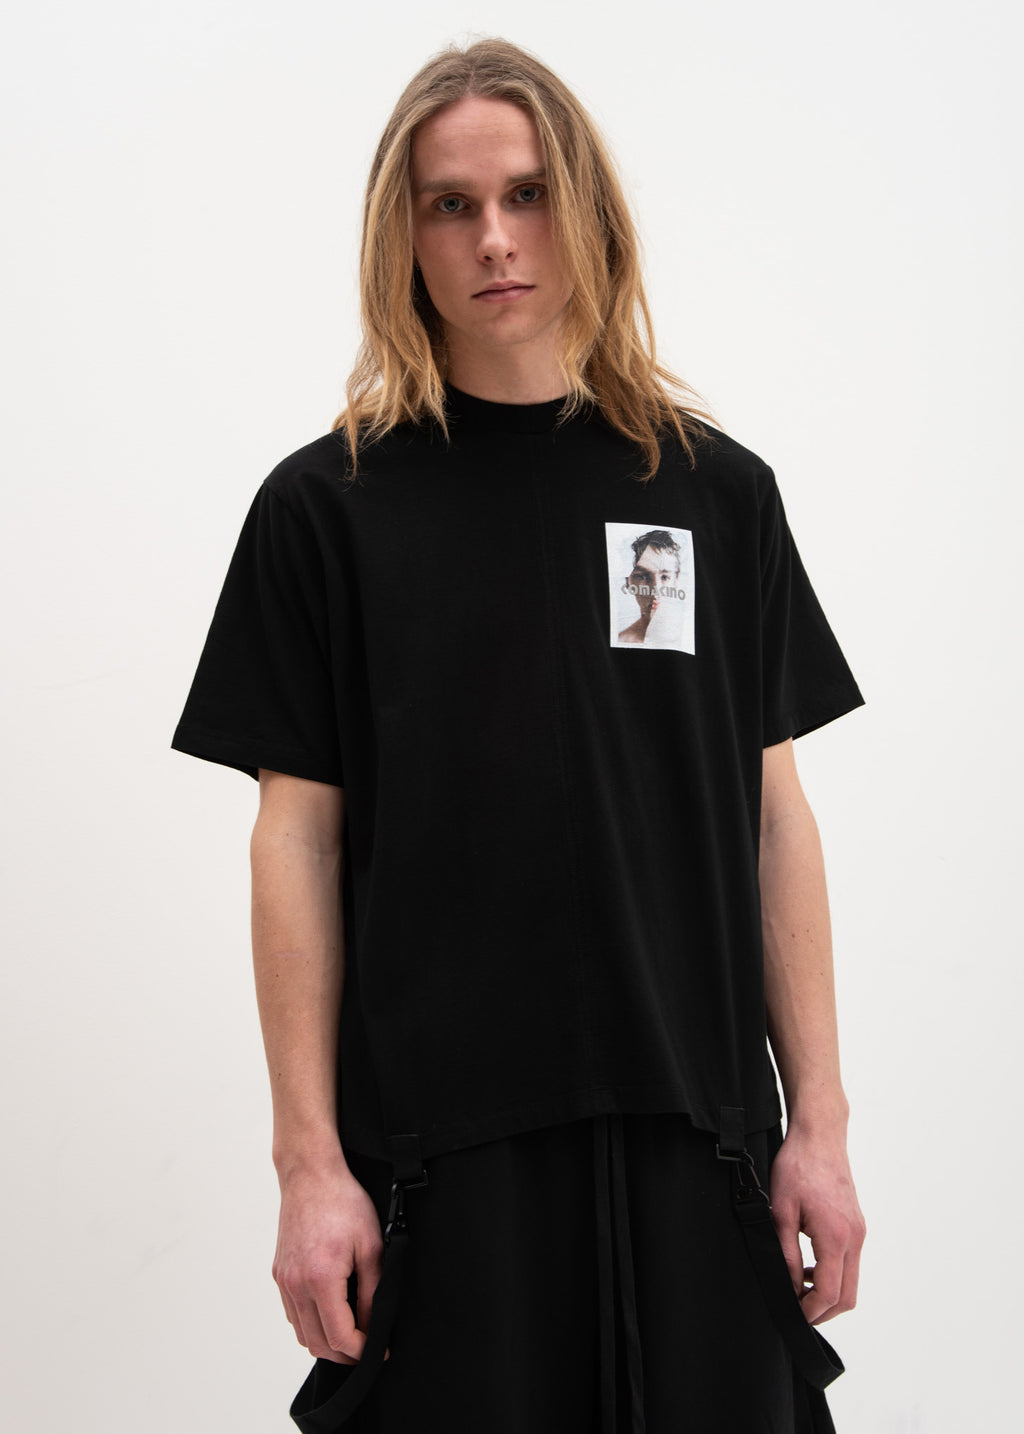 Komakino, Black Boxy T-Shirt Crashed 3M, 017 Shop